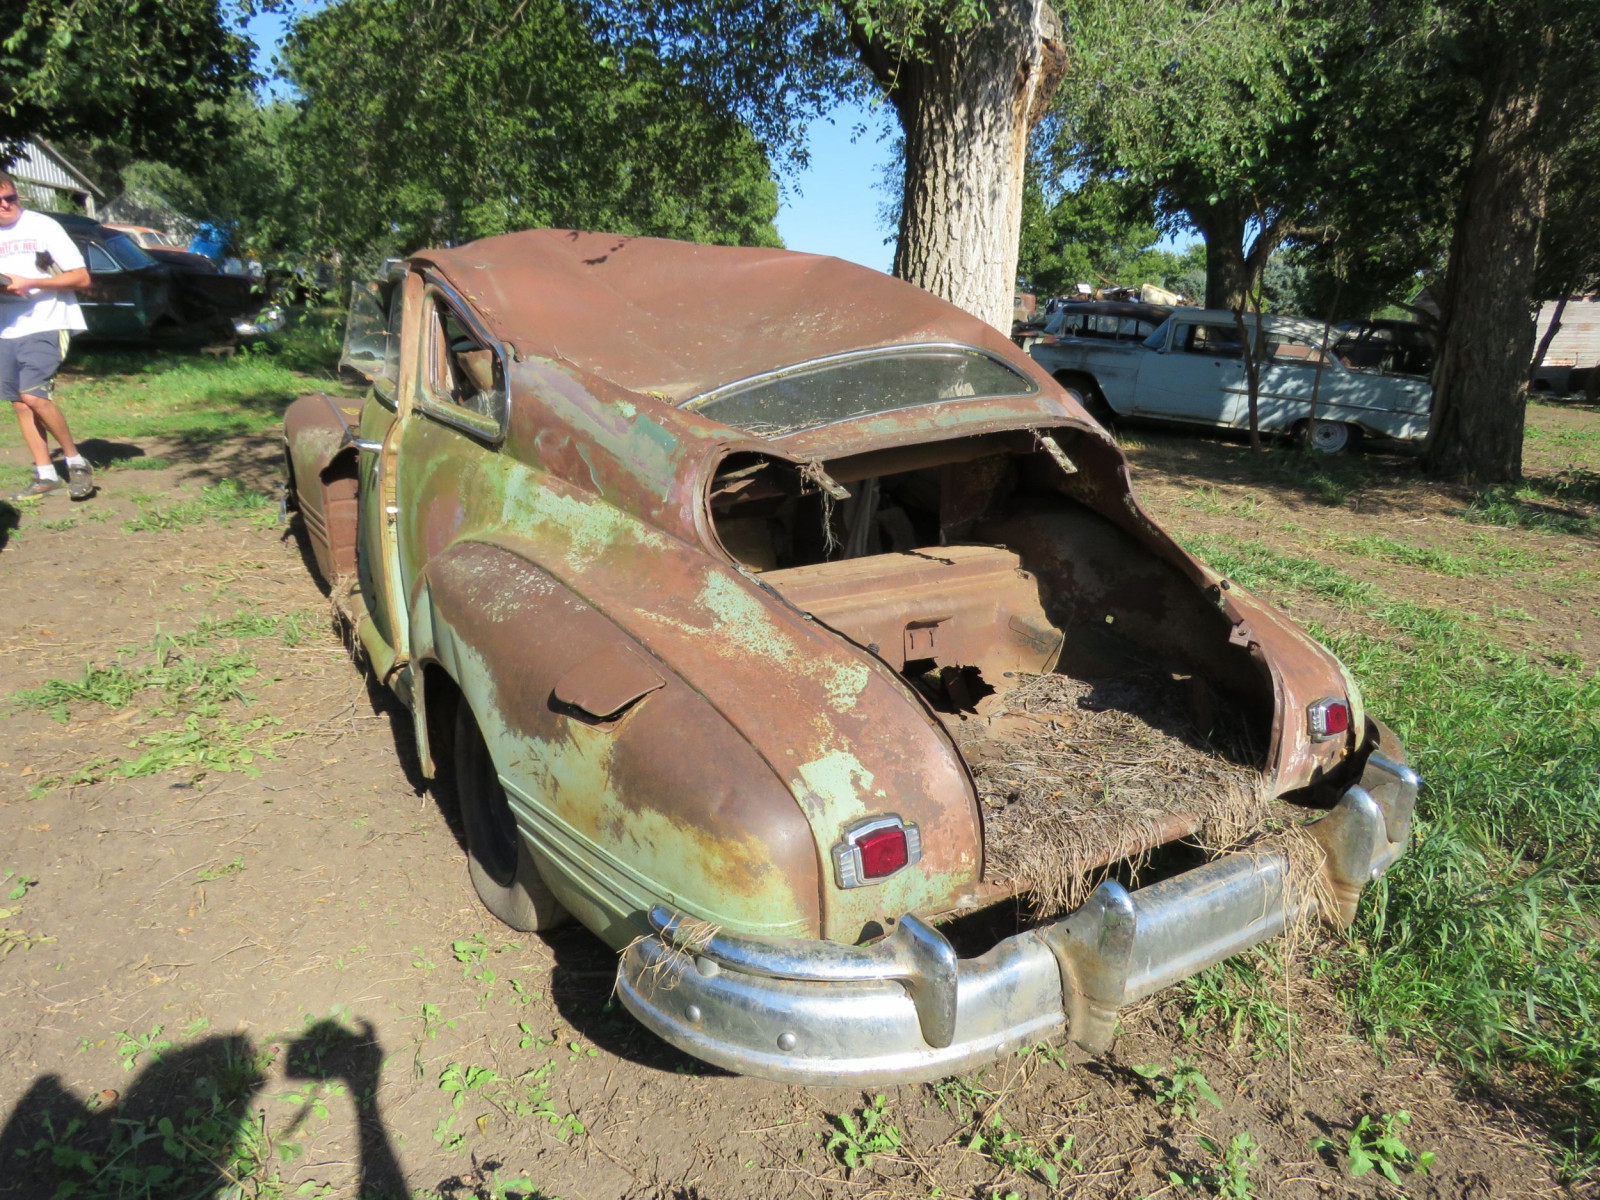 1947 Chevrolet 2dr Sedan for project or parts - Image 2